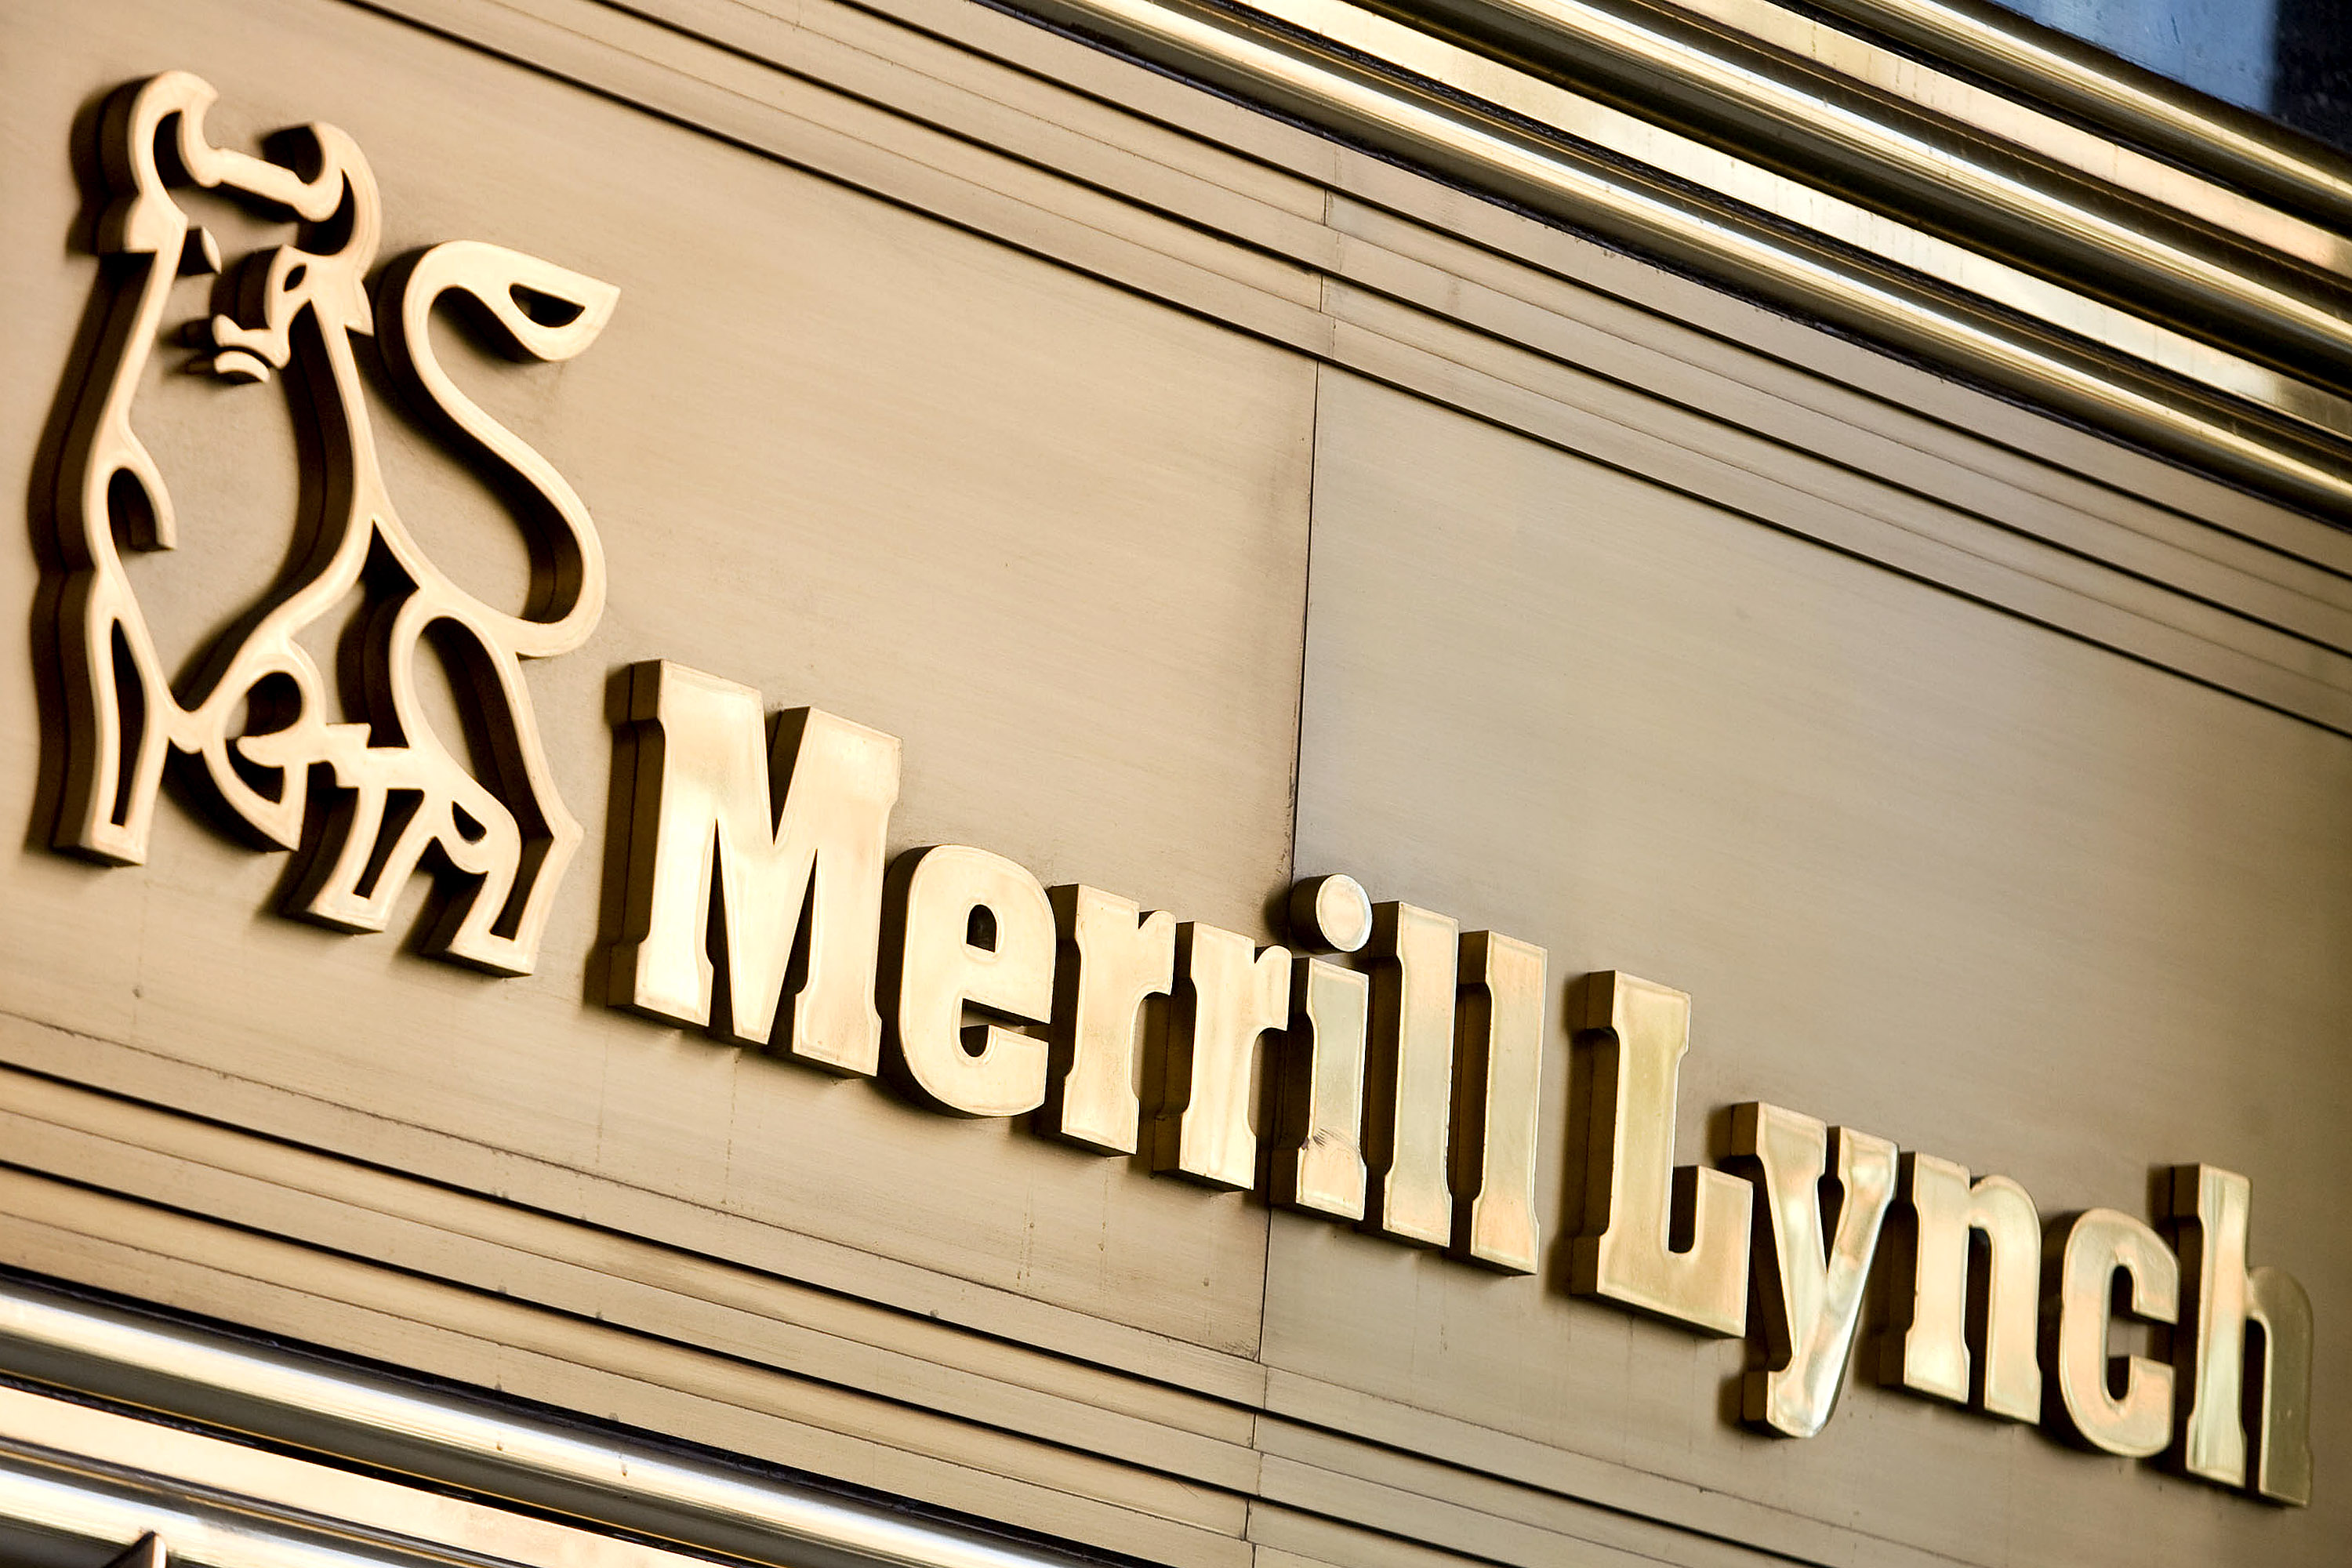 https://assets.sourcemedia.com/24/b9/e20cd88f4e6480157dcca532edad/merrill-lynch-sign-bloomberg-news.jpg